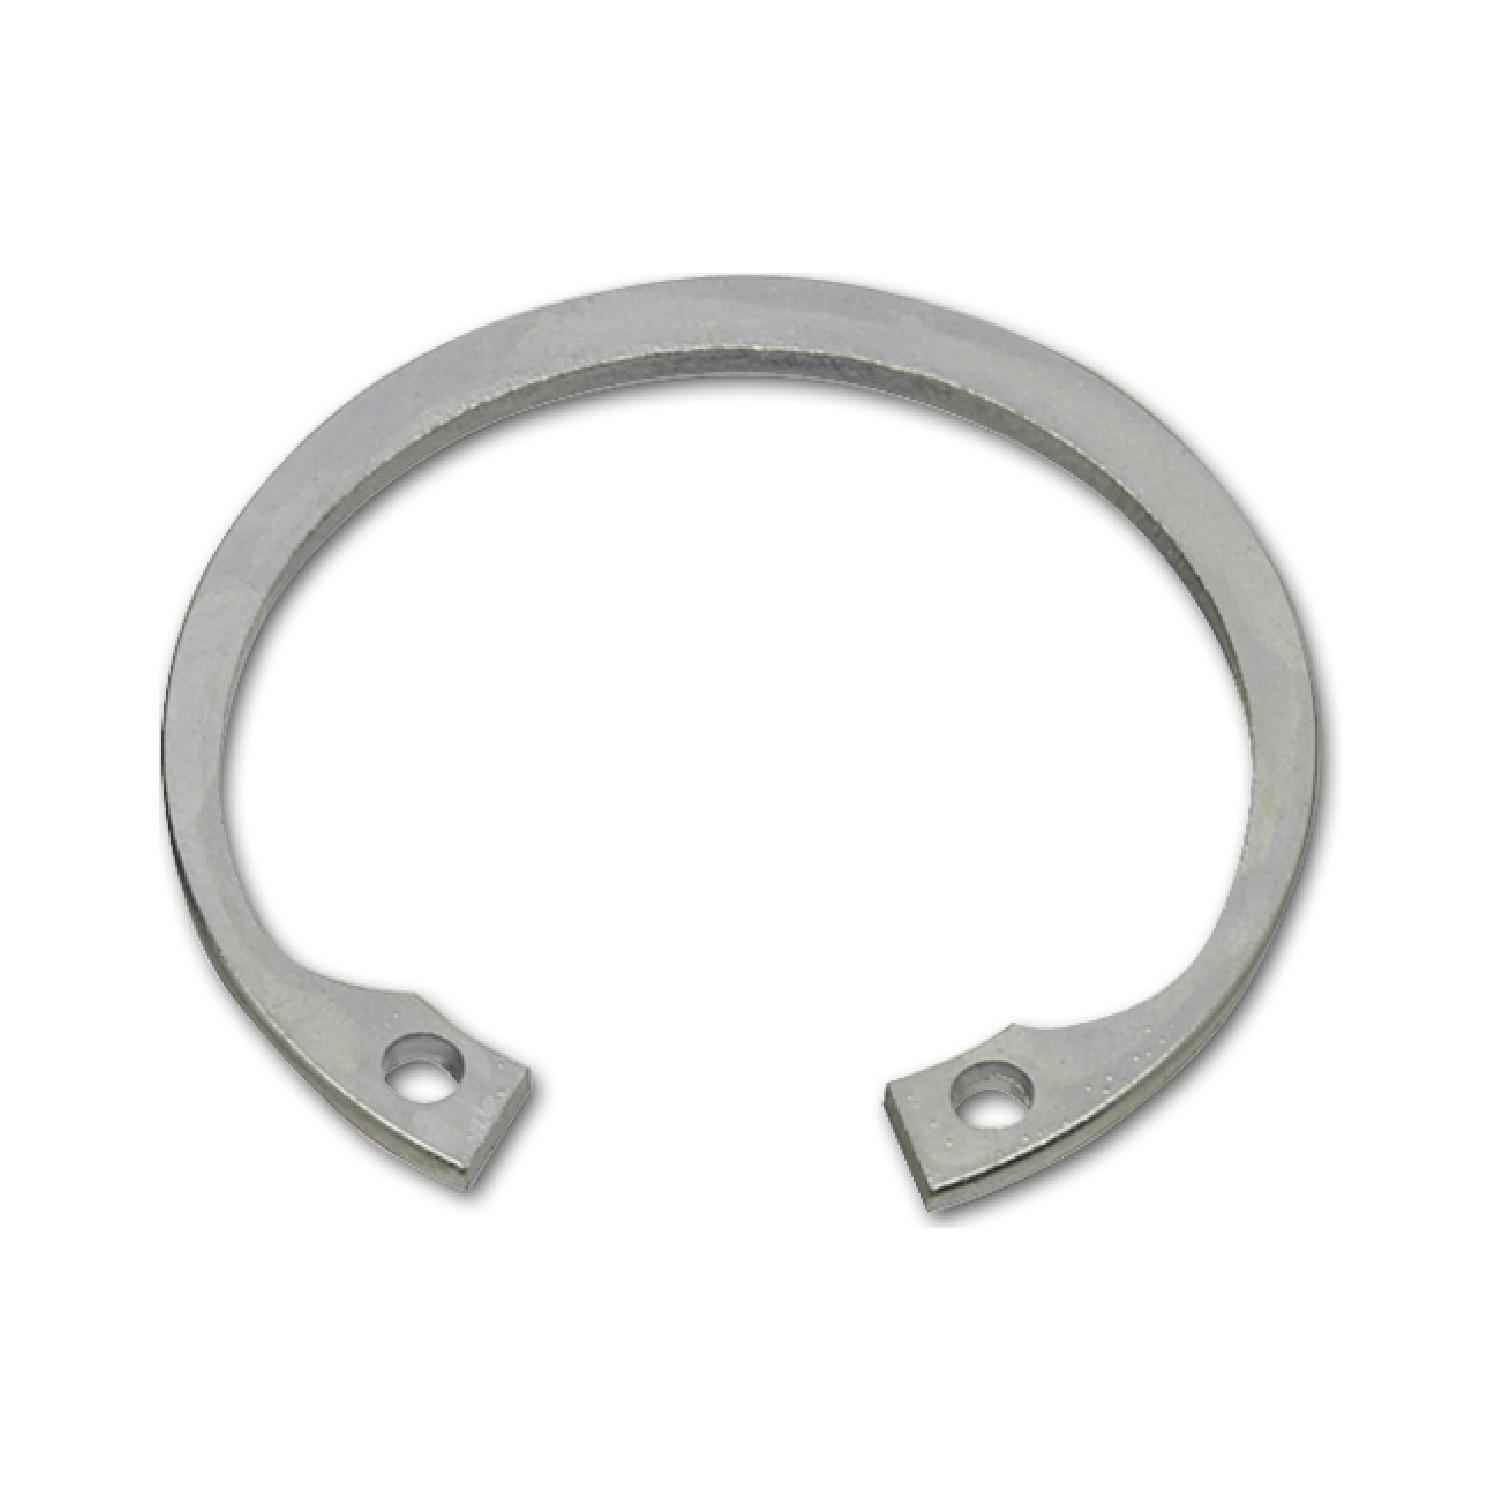 STAINLESS STEEL 8MM INTERNAL CIRCLIPS CIRCLIP DIN472 Pack of 2